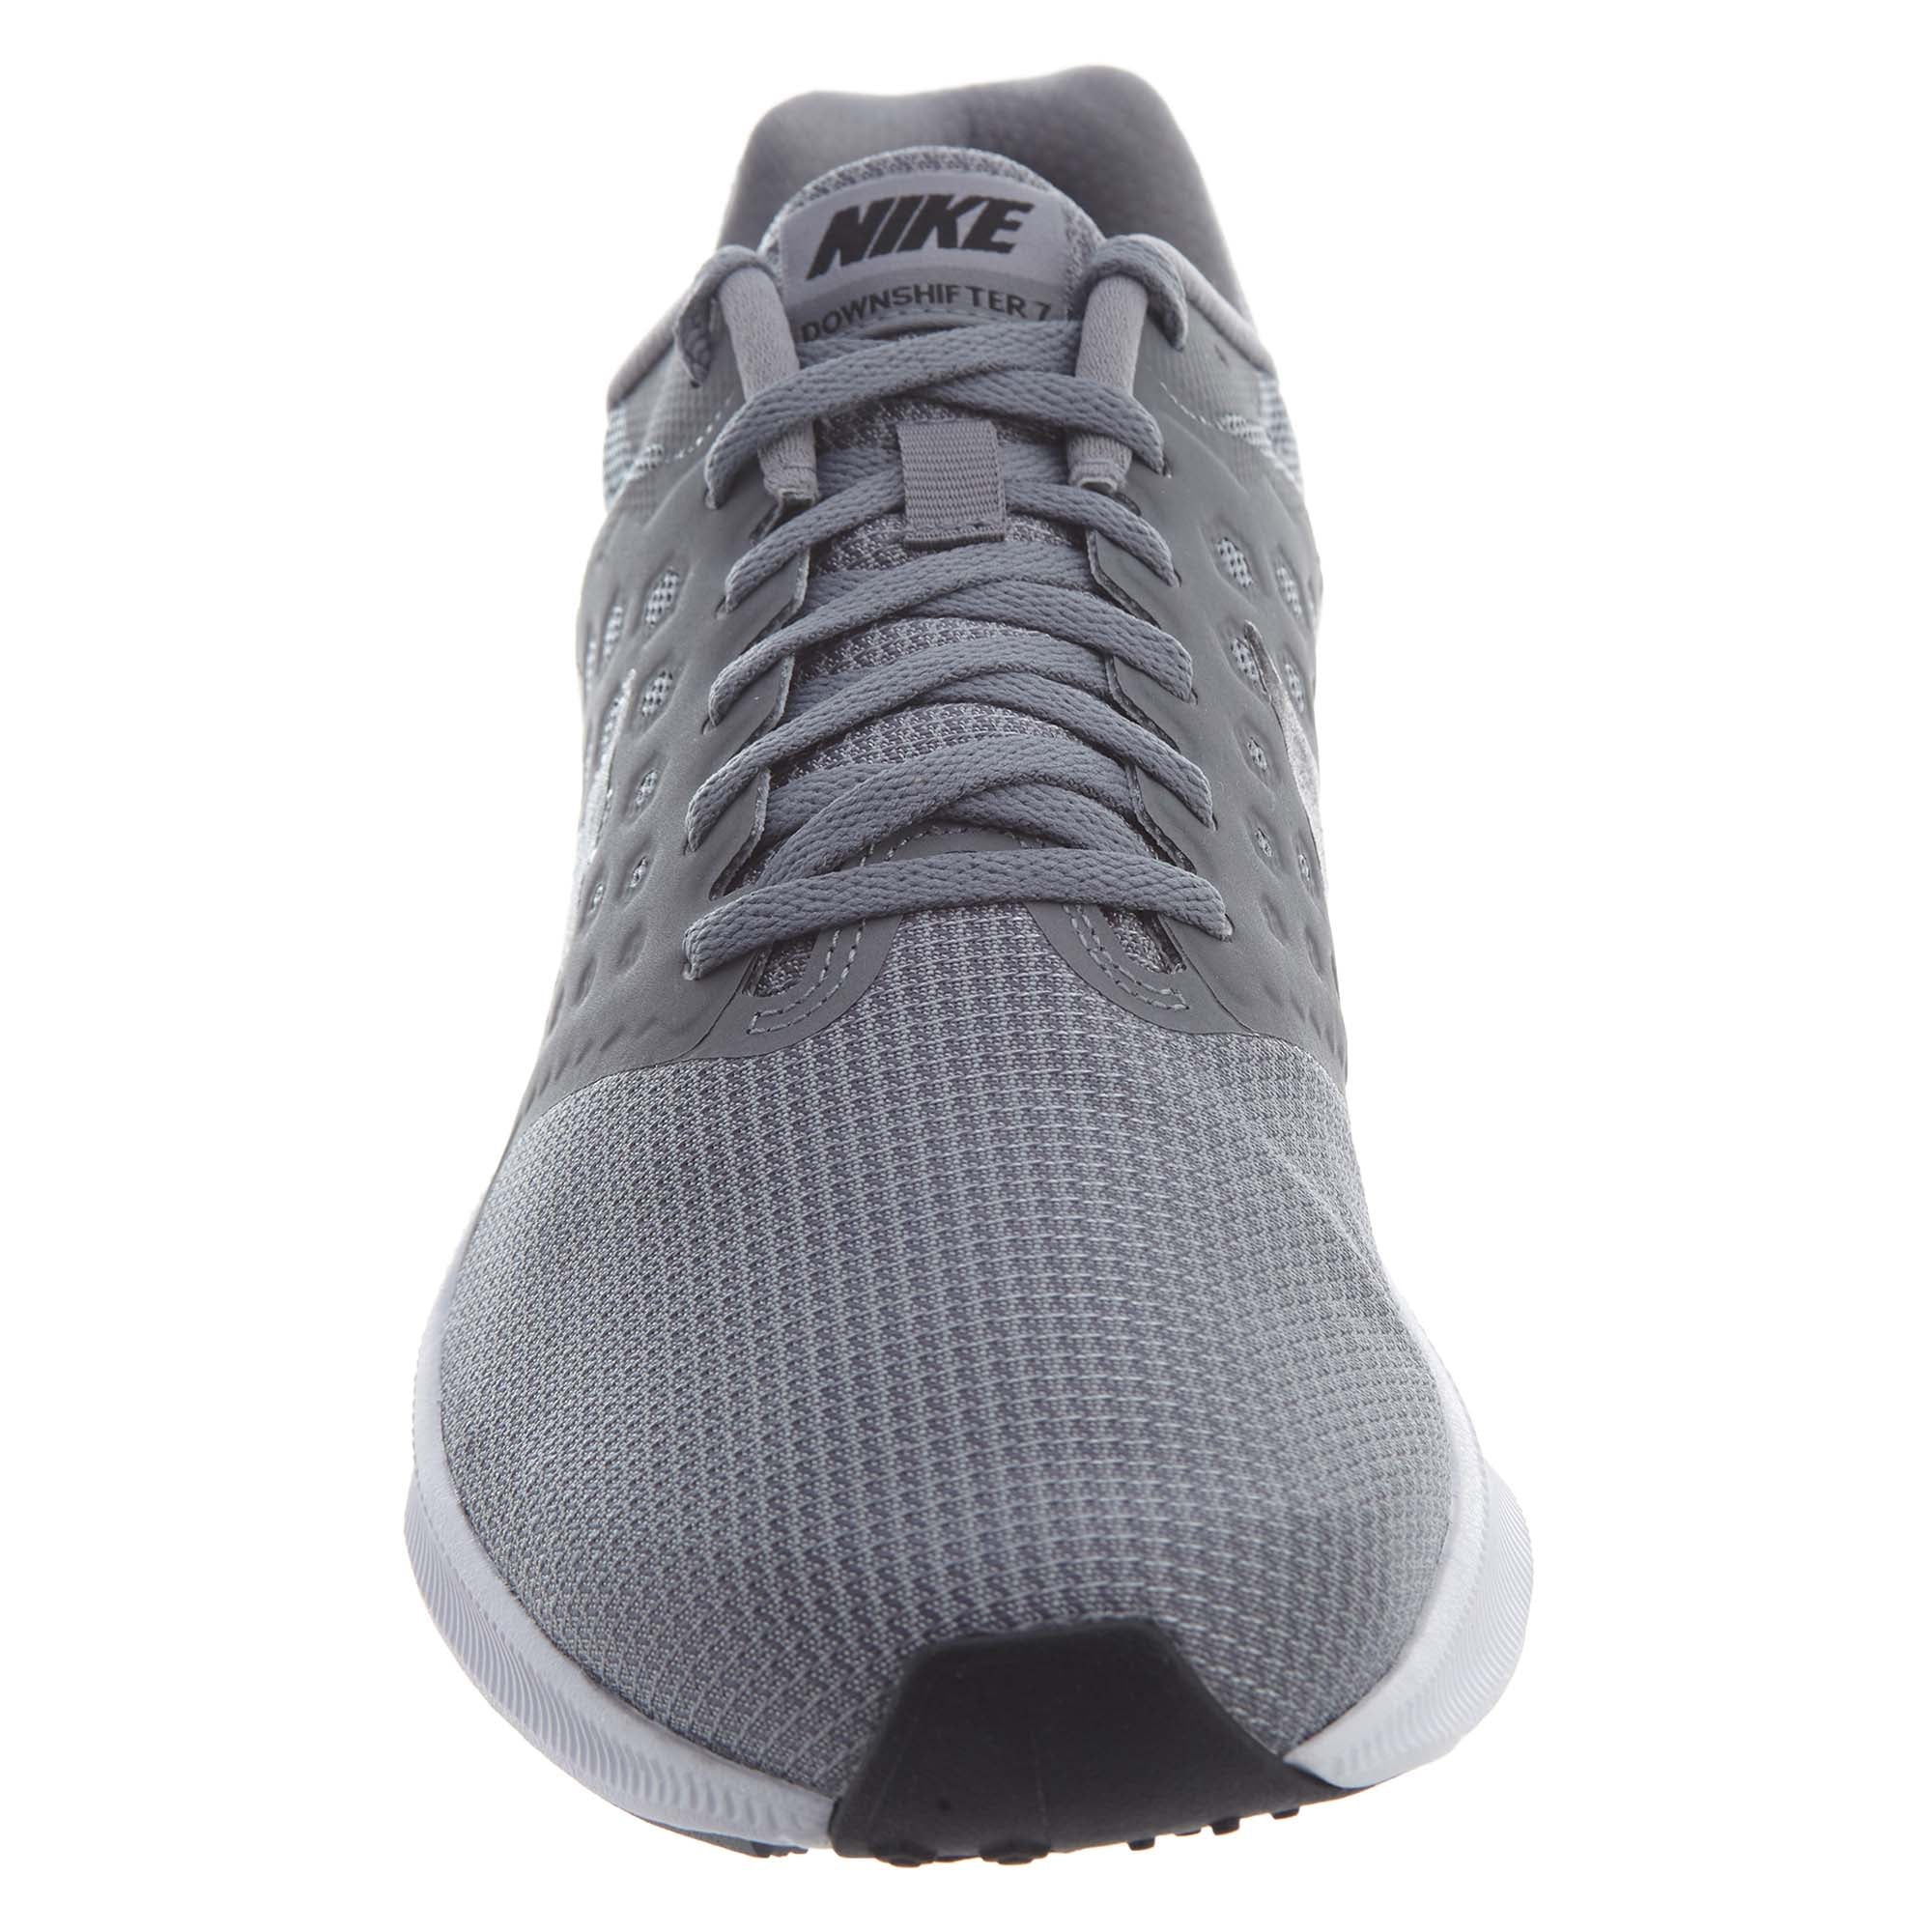 ff25ef7cf0c0 Nike Downshifter 7 Mens Style   852459-009